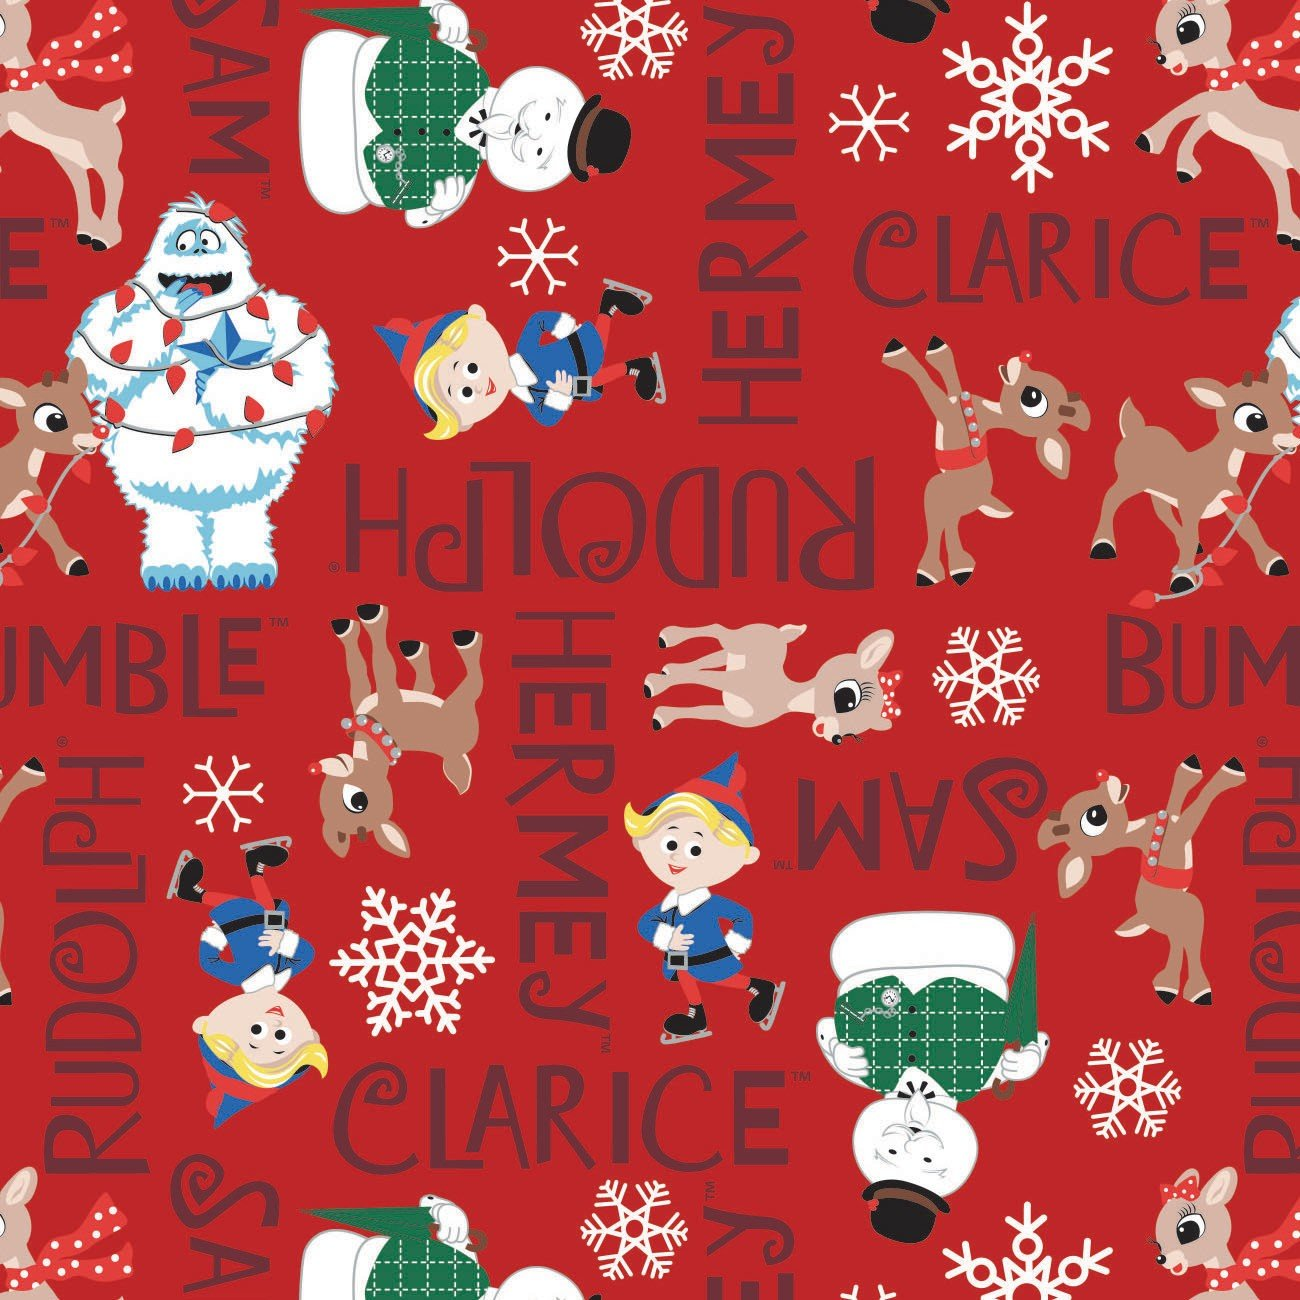 Character Winter Holiday 2  Rudolph Character Names on Red  Fabric by the Yard